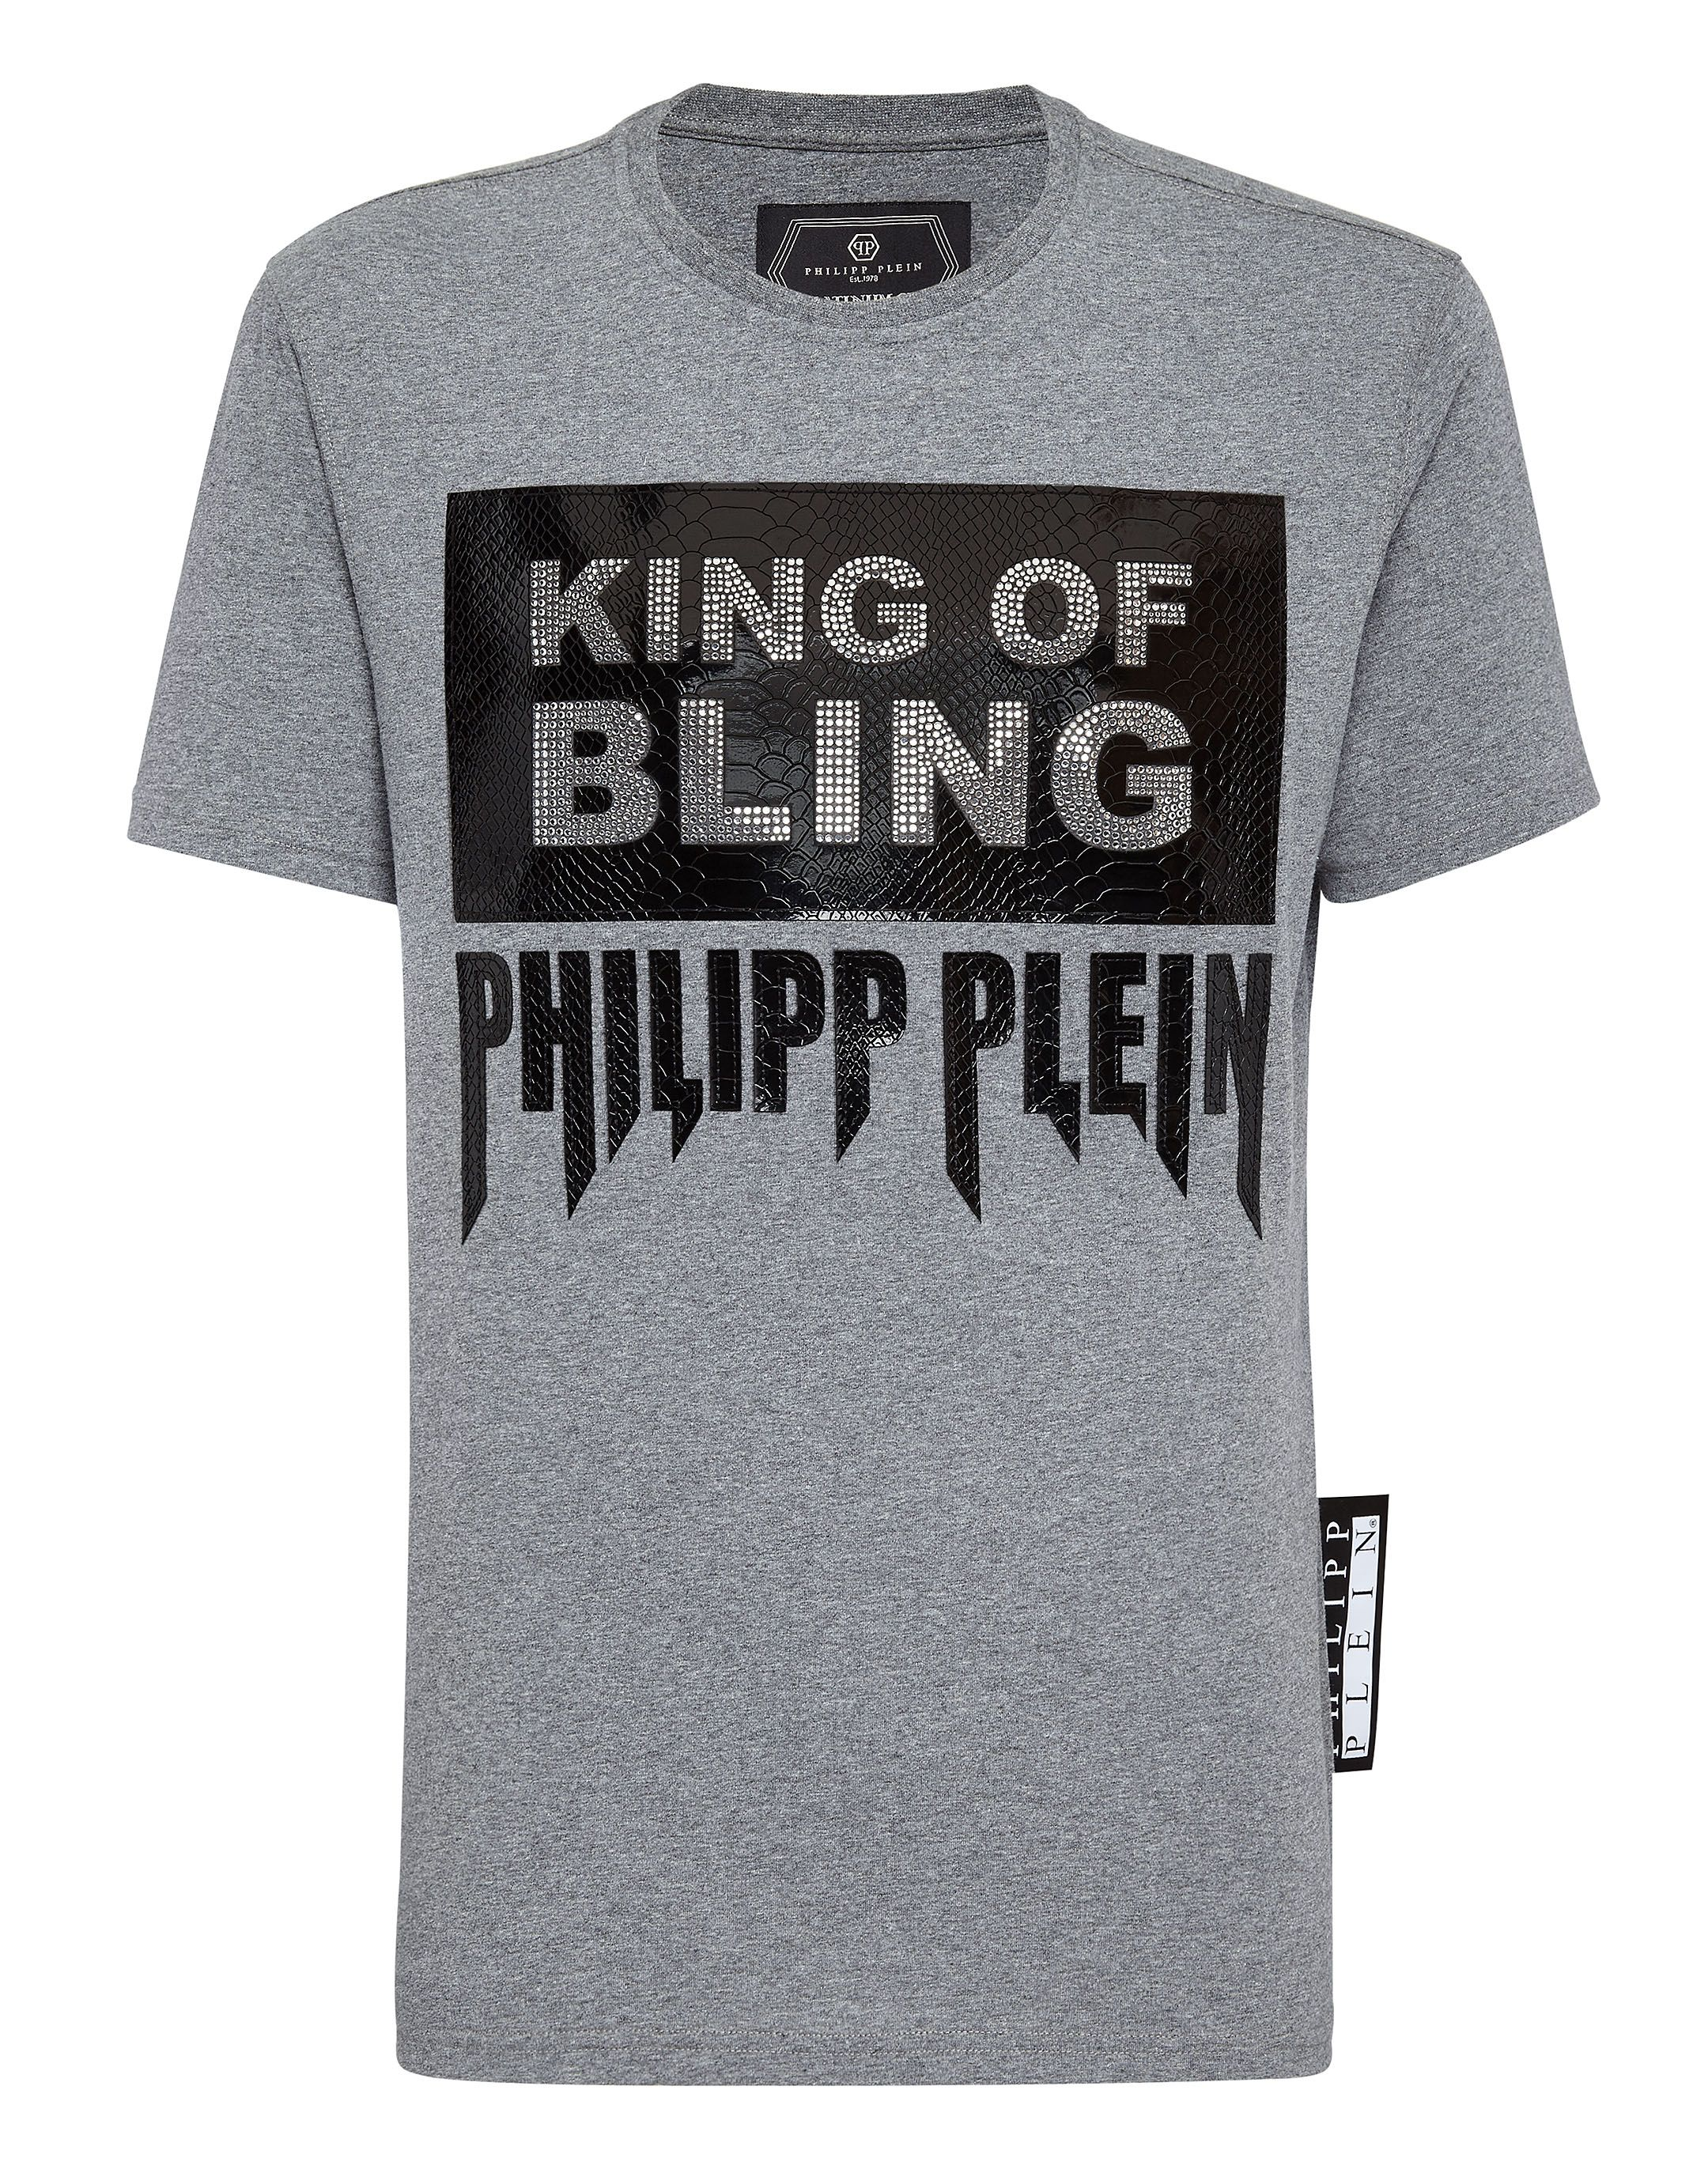 aea706dd3608 PHILIPP PLEIN T-SHIRT PLATINUM CUT ROUND NECK ROCK PP. #philippplein #cloth